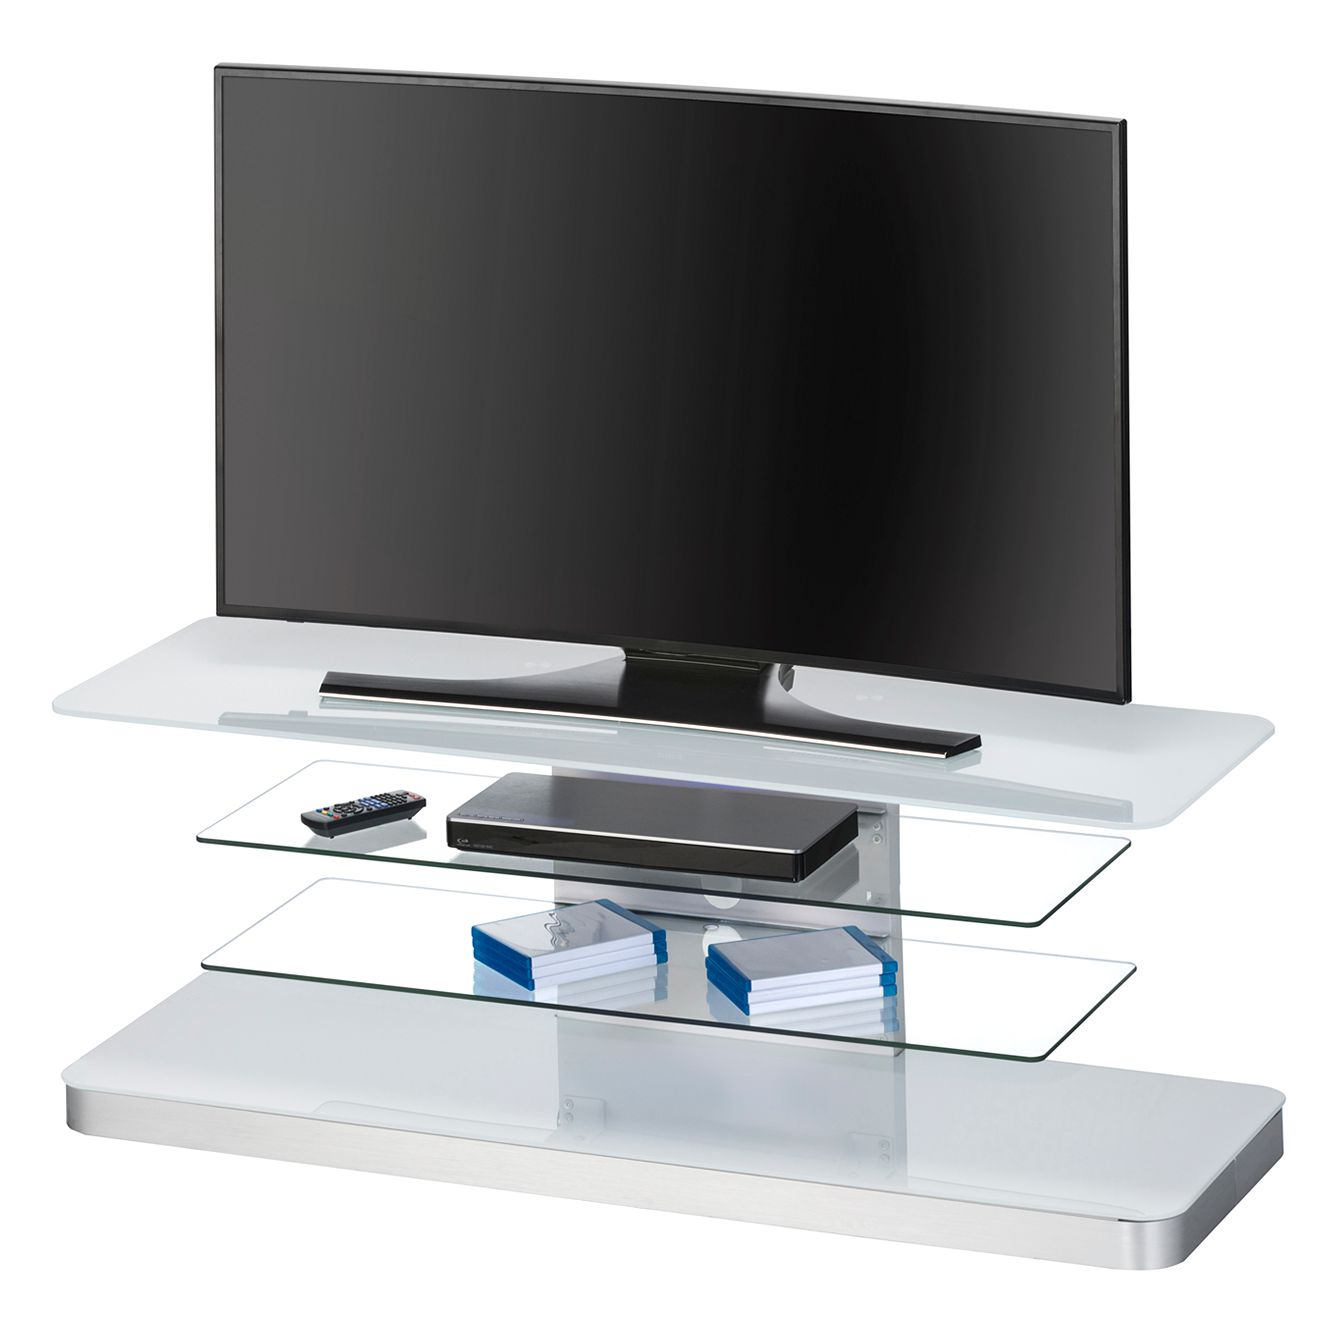 tv rack wei preis vergleich 2016. Black Bedroom Furniture Sets. Home Design Ideas